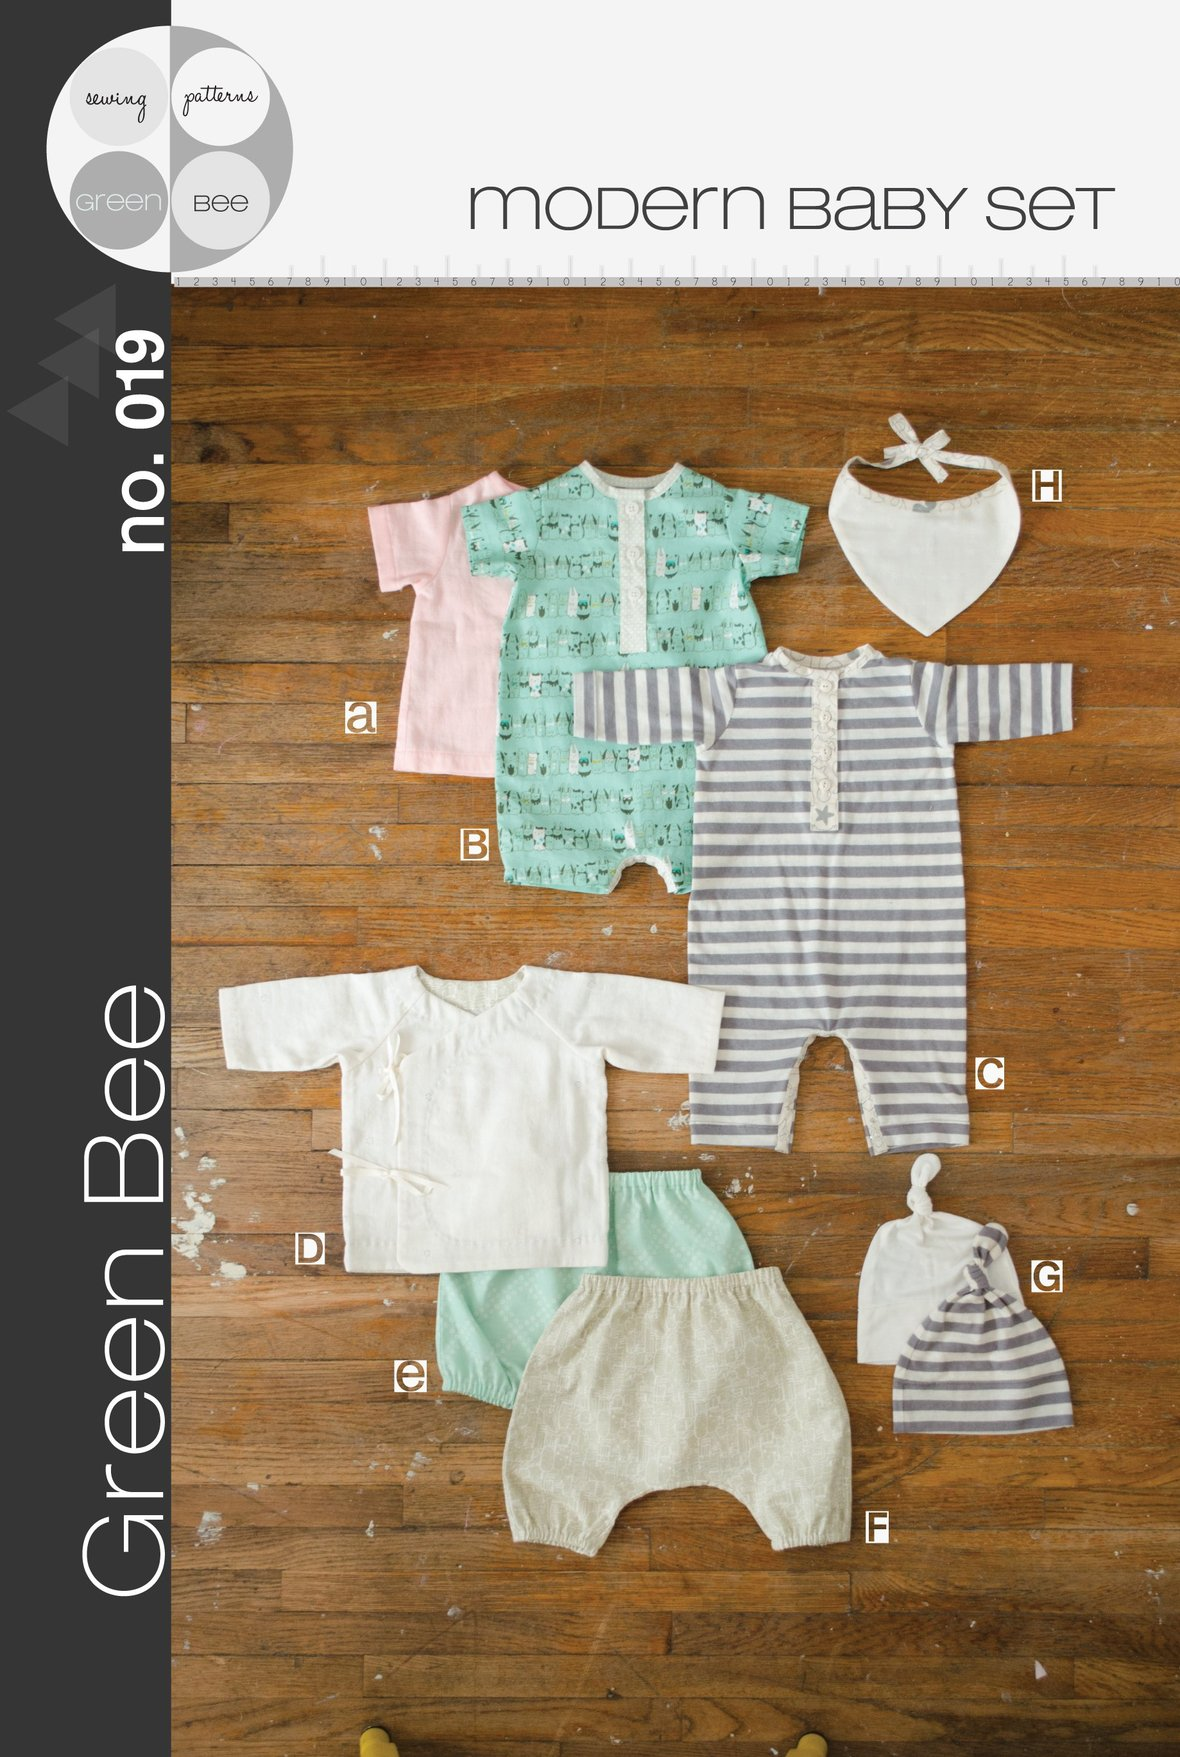 green bee design modern baby set sewing pattern